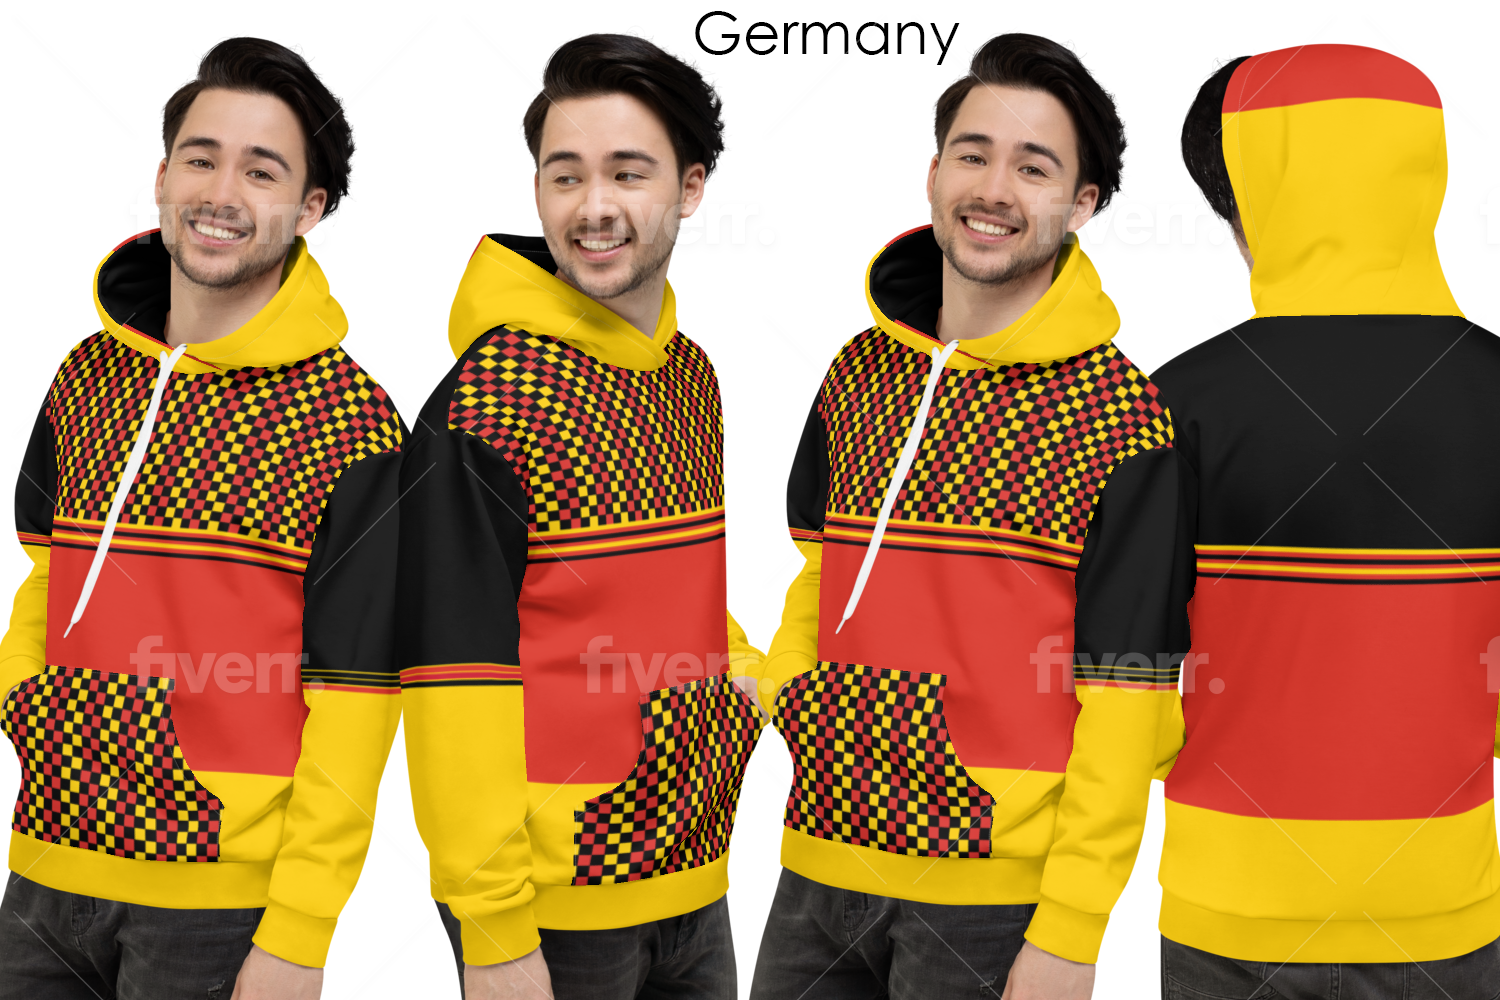 The National Flag of German Inspires Designs For Volleyball Outfits